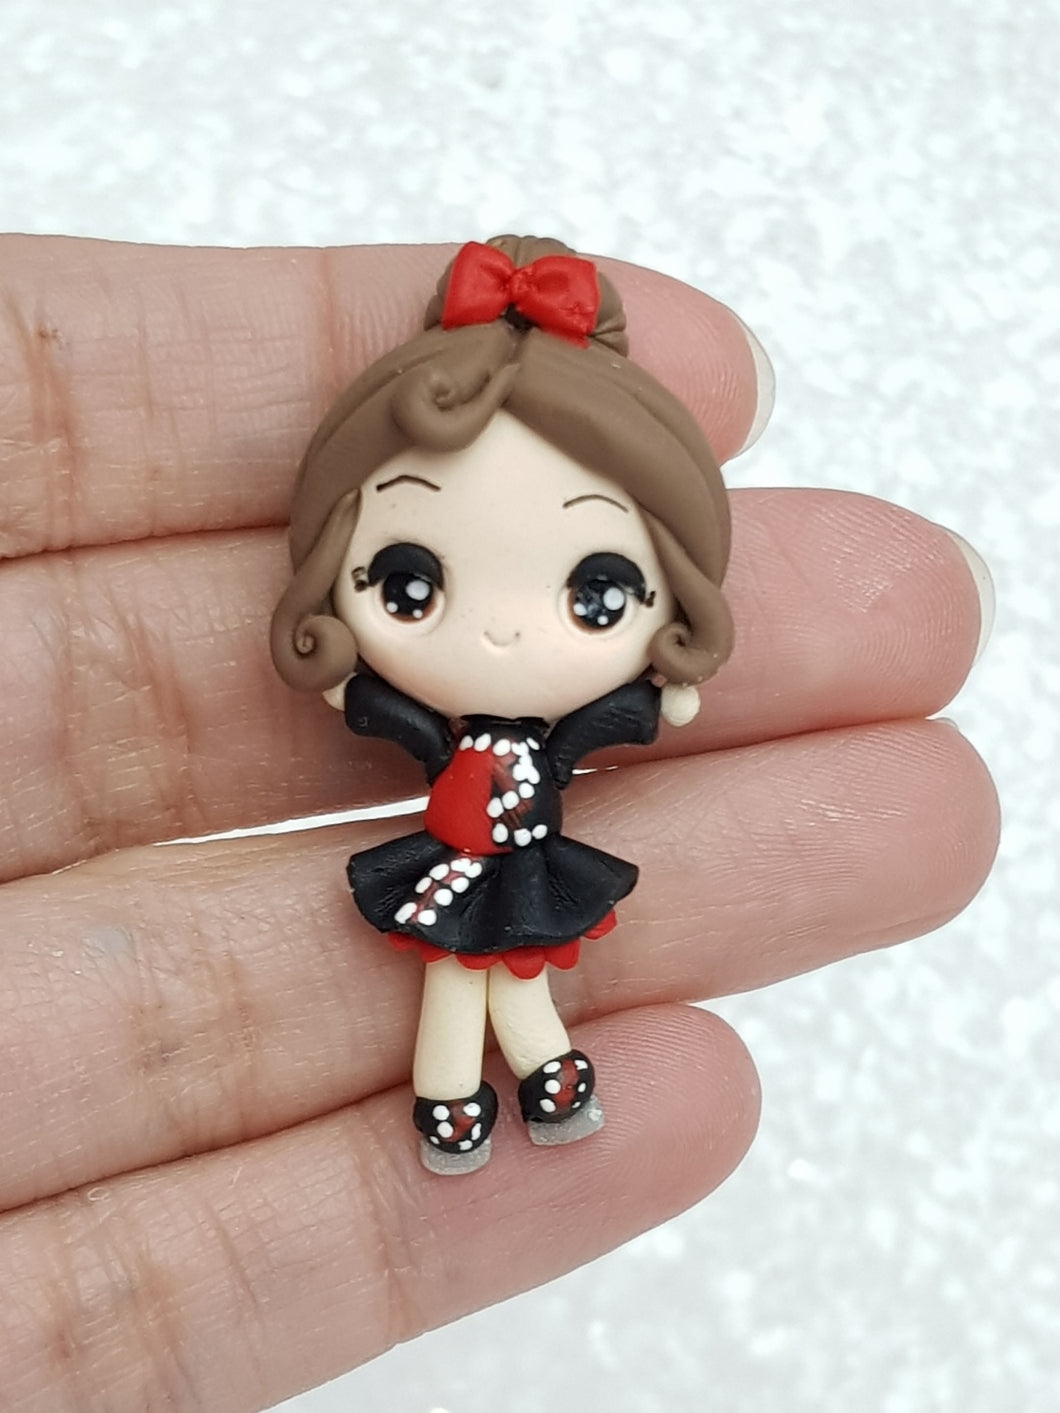 Handmade Clay Charm - New Big Eyes Ice Skating Girl